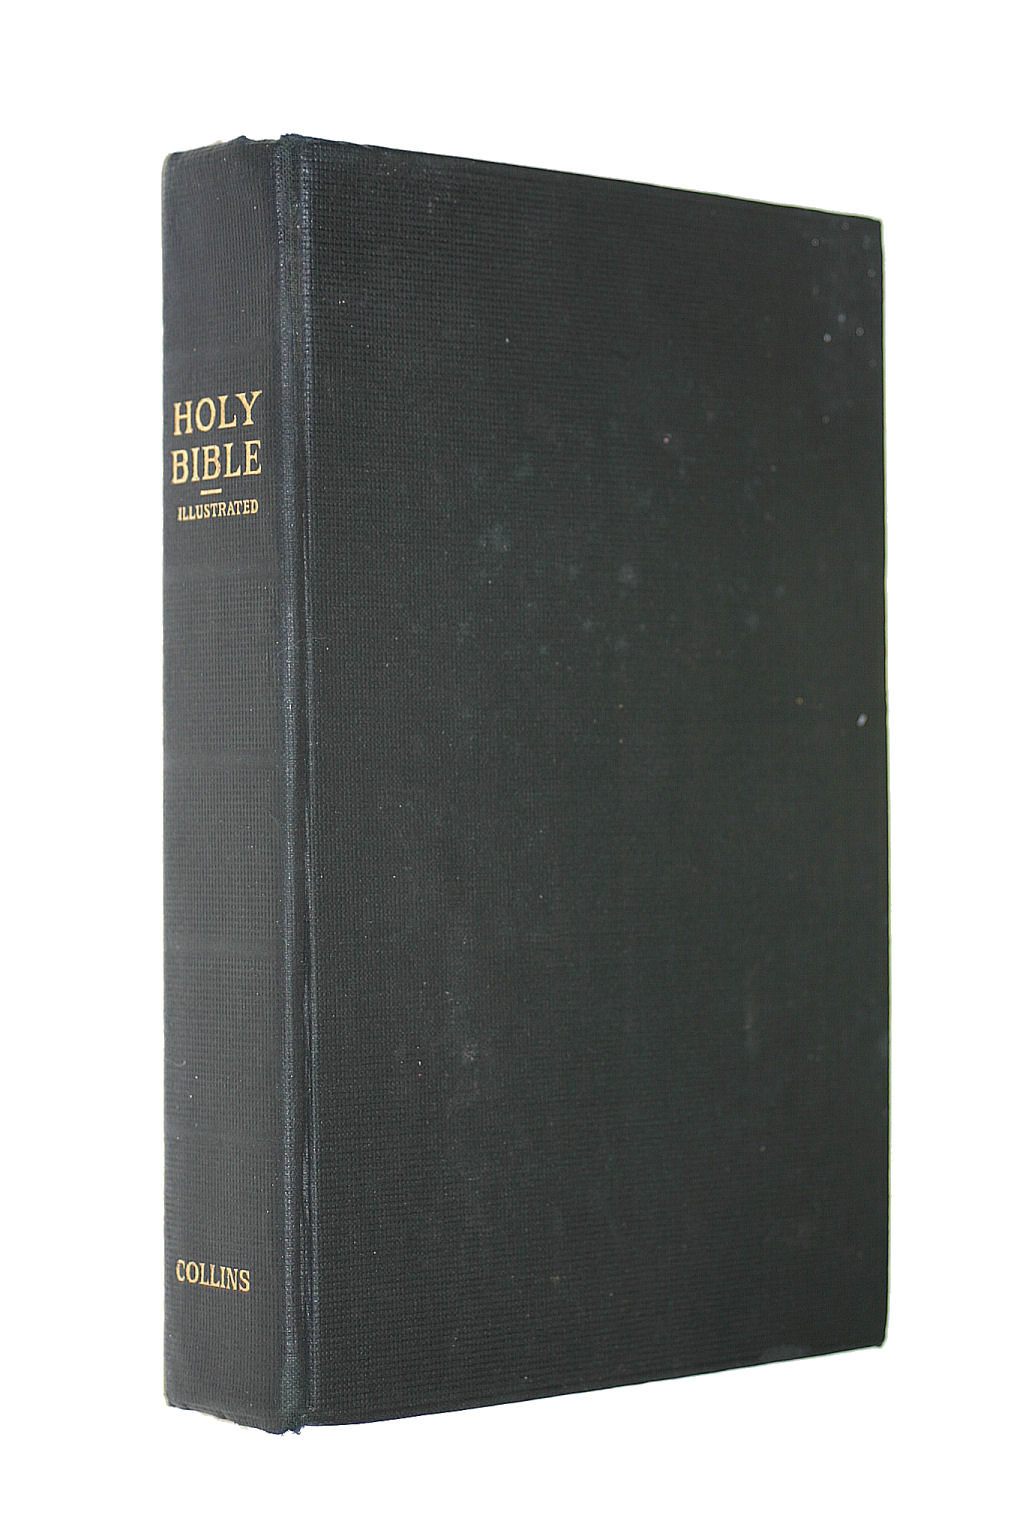 Image for Holy Bible Illustrated containing Old and New Testaments. Authorised King James Version